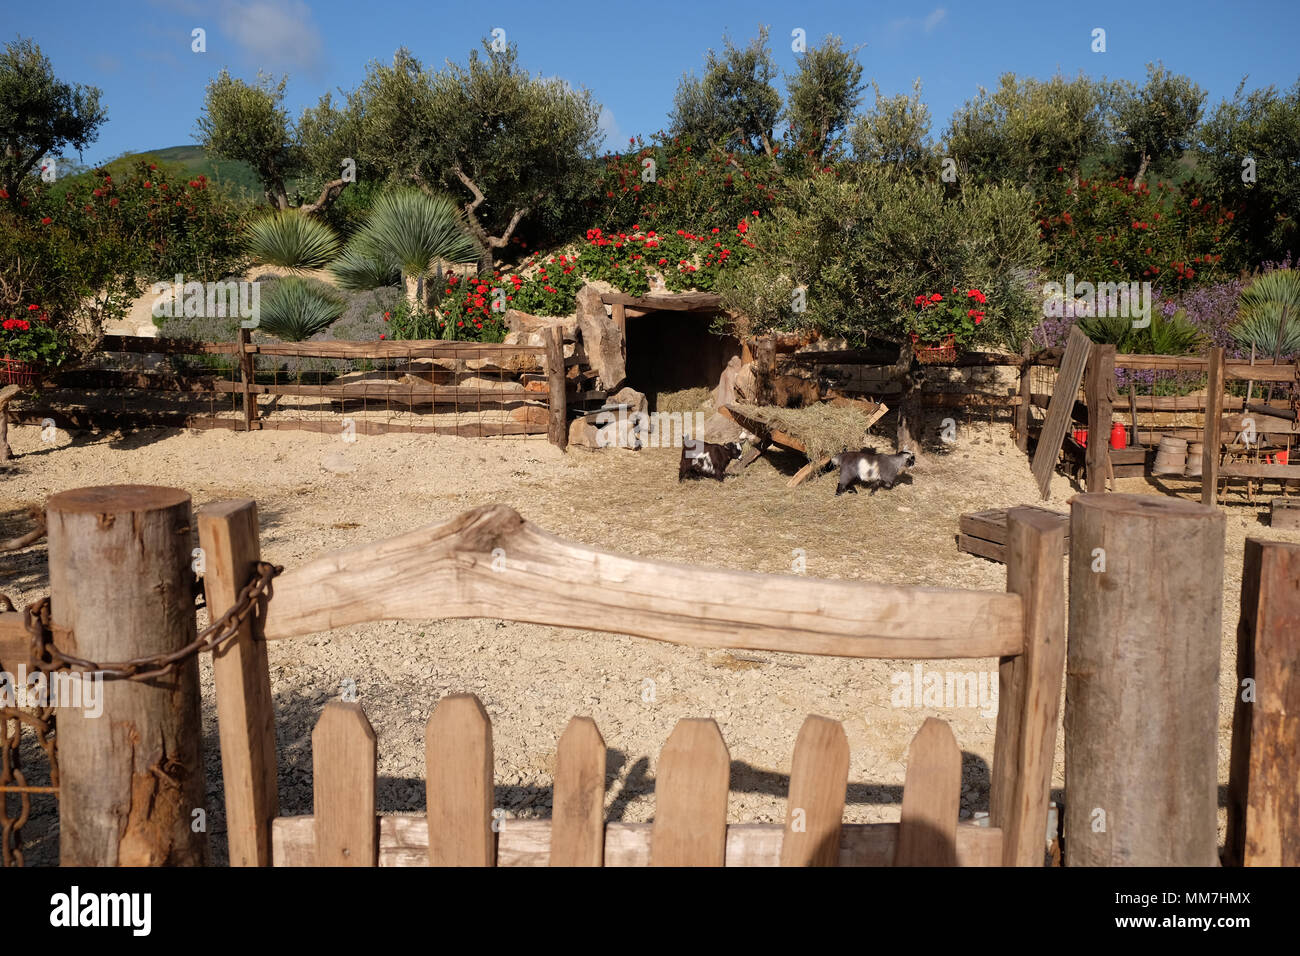 RHS Malvern Spring Festival - Thursday 10th May 2018 - Opening Day for this years RHS Malvern Spring Festival - The show gardens include Billy's Cave designed by Villaggio Verde to evoke a slow pace small holding in rural Portugal complete with pygmy goats. Photo Steven May / Alamy Live News - Stock Image